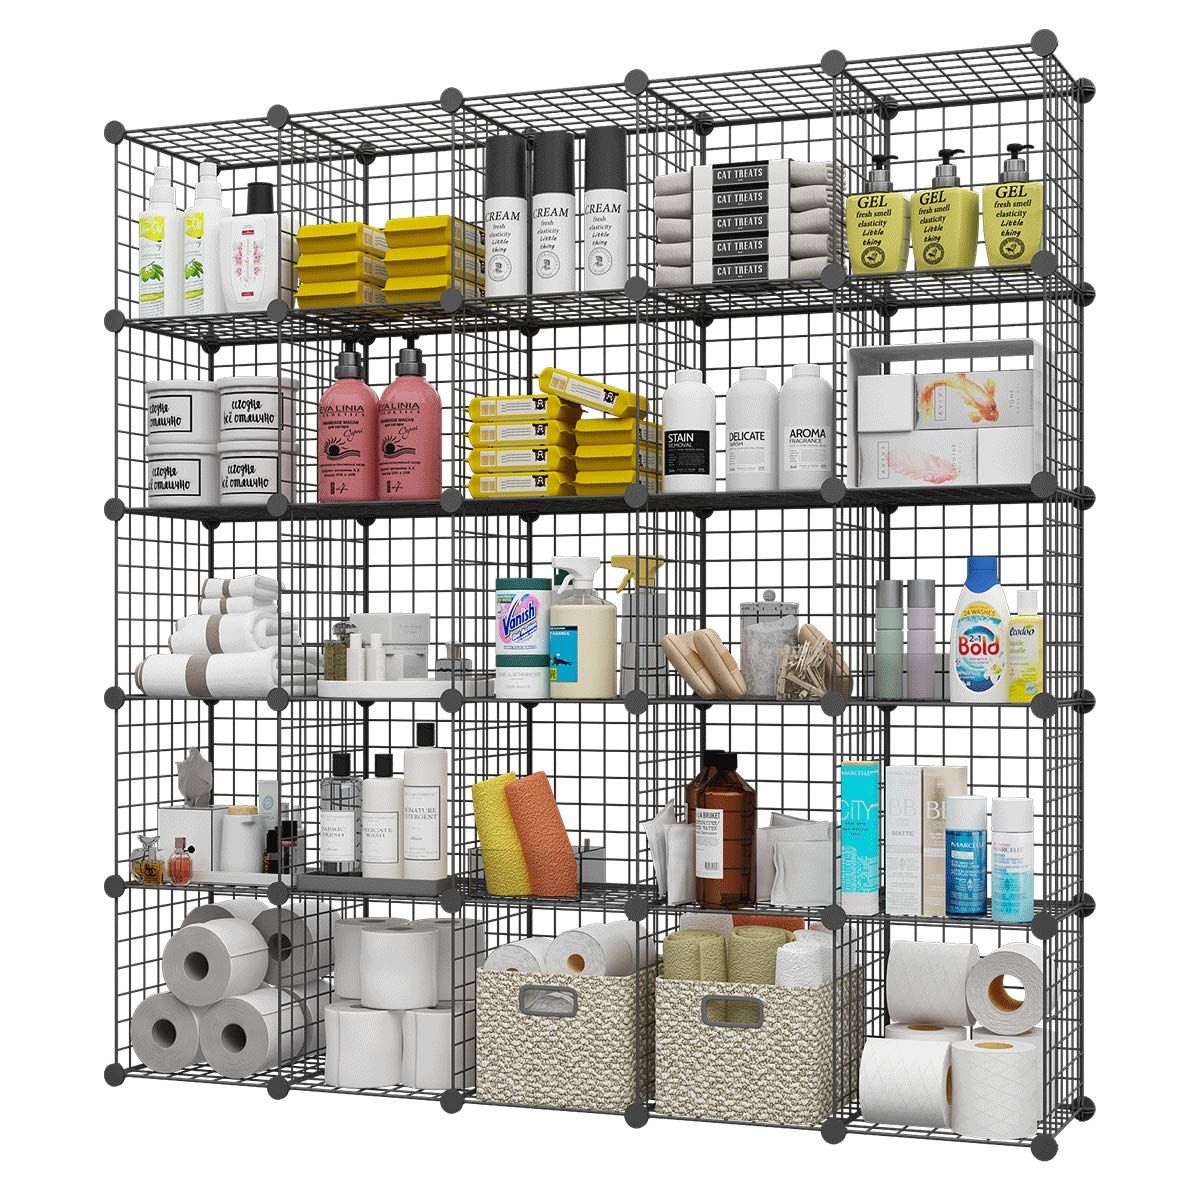 """KOUSI 14""""x14"""" Storage Cubes Wire Grid Modular Metal Cubbies Organizer Bookcases and Book Shelves Origami Multifunction Shelving Unit"""